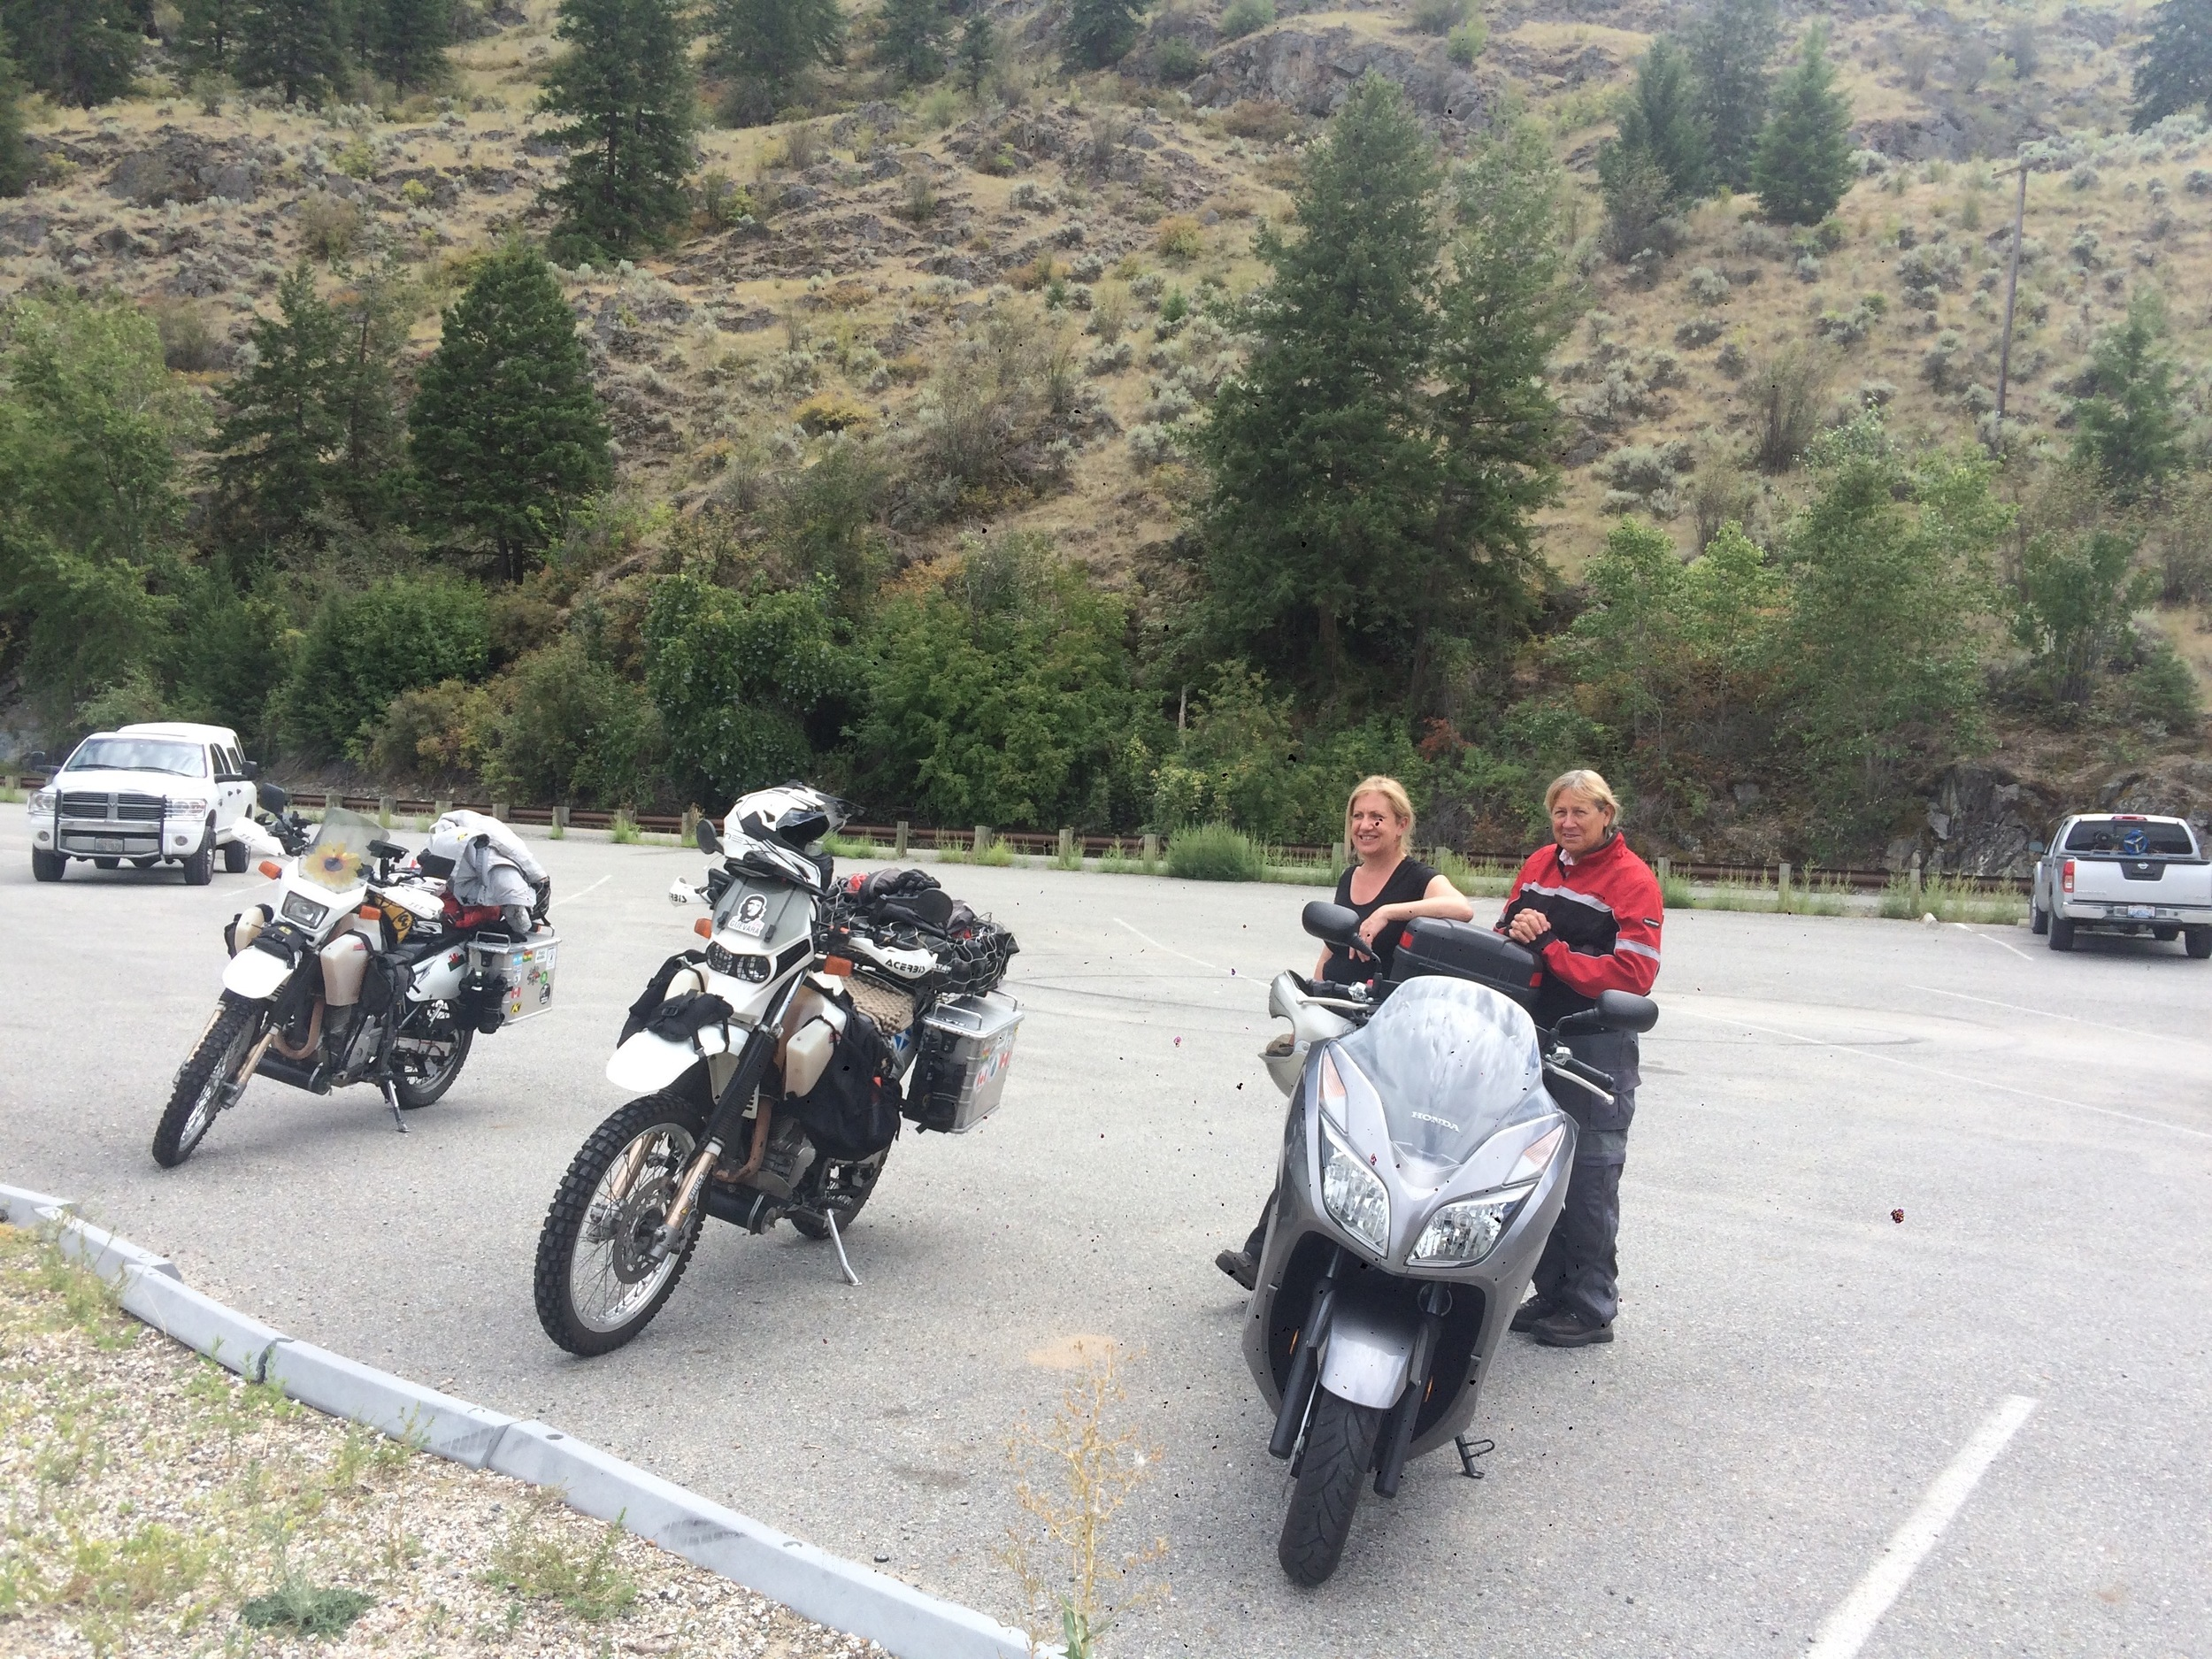 Leta kindly offered to show us a neat backroad, fun to ride as a group for a short while at least